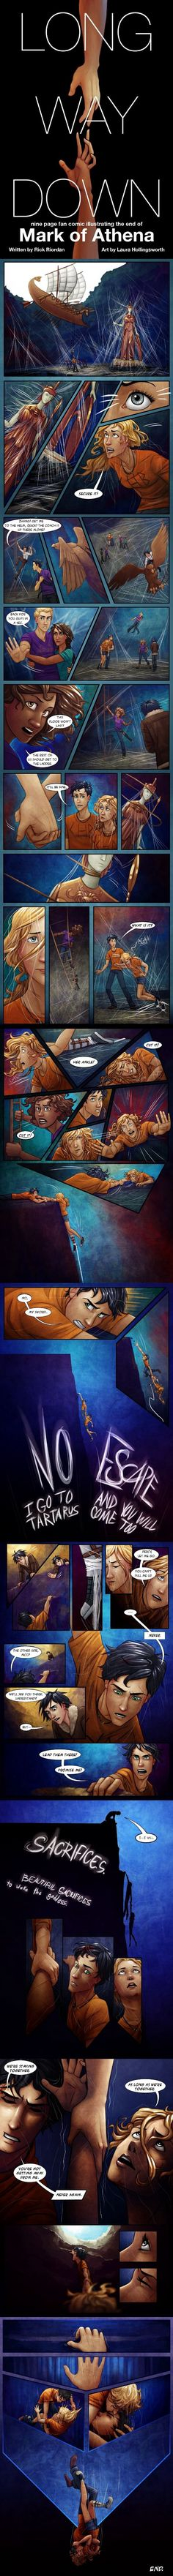 This makes me cry in the inside and my love for percabeth to grow!